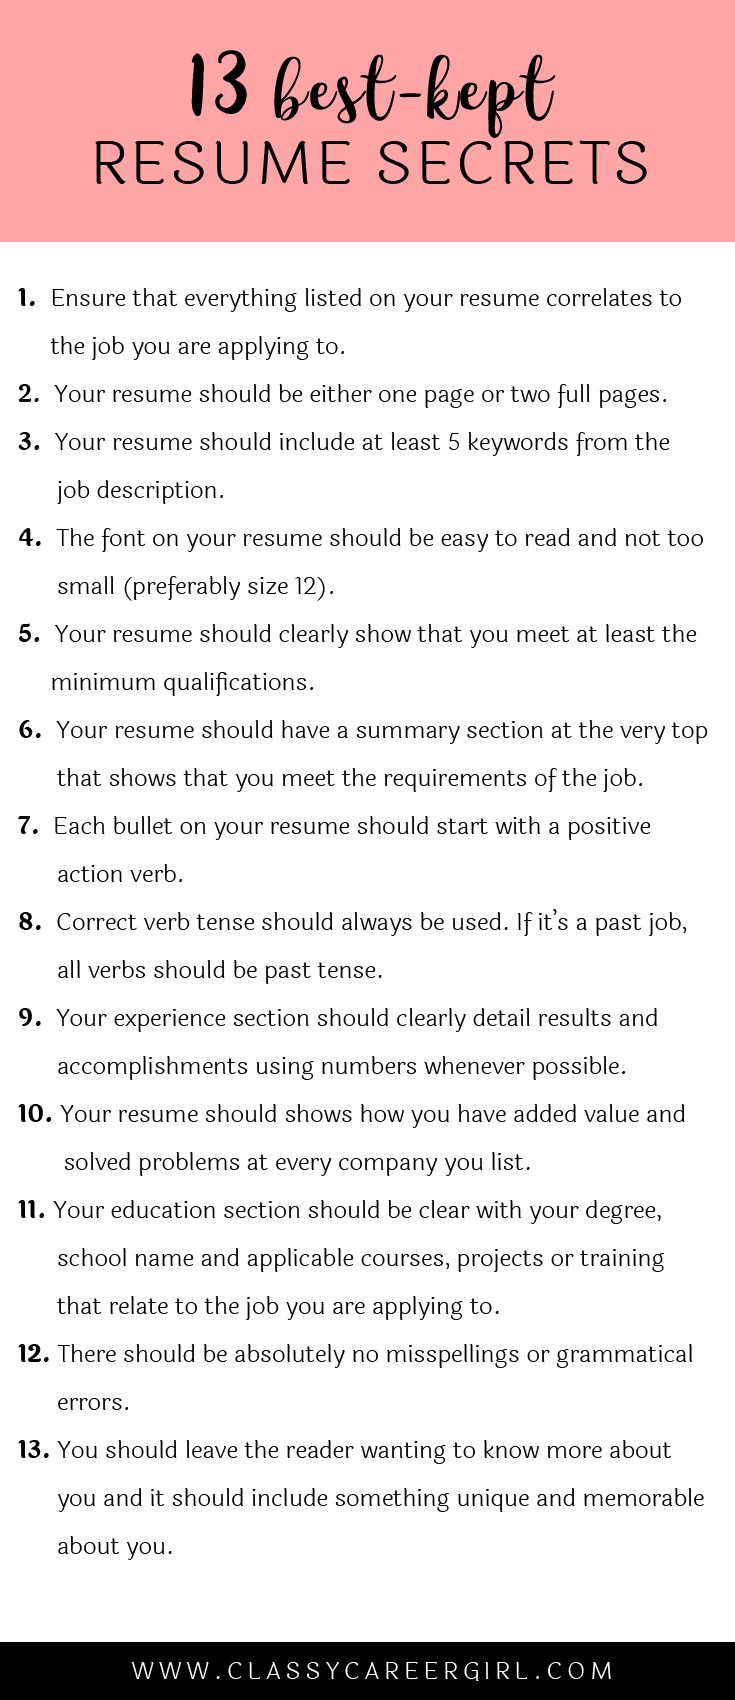 Opposenewapstandardsus  Pleasant  Ideas About Resume On Pinterest  Cv Format Resume Cv And  With Fascinating Some Hiring Managers Will Toss Your Resume Out If You Dont Know These  With Astounding General Resume Objectives Also Entry Level Nursing Resume In Addition Help Me Make A Resume And Resume Examples  As Well As How To Update Resume Additionally Resume For Restaurant Manager From Pinterestcom With Opposenewapstandardsus  Fascinating  Ideas About Resume On Pinterest  Cv Format Resume Cv And  With Astounding Some Hiring Managers Will Toss Your Resume Out If You Dont Know These  And Pleasant General Resume Objectives Also Entry Level Nursing Resume In Addition Help Me Make A Resume From Pinterestcom